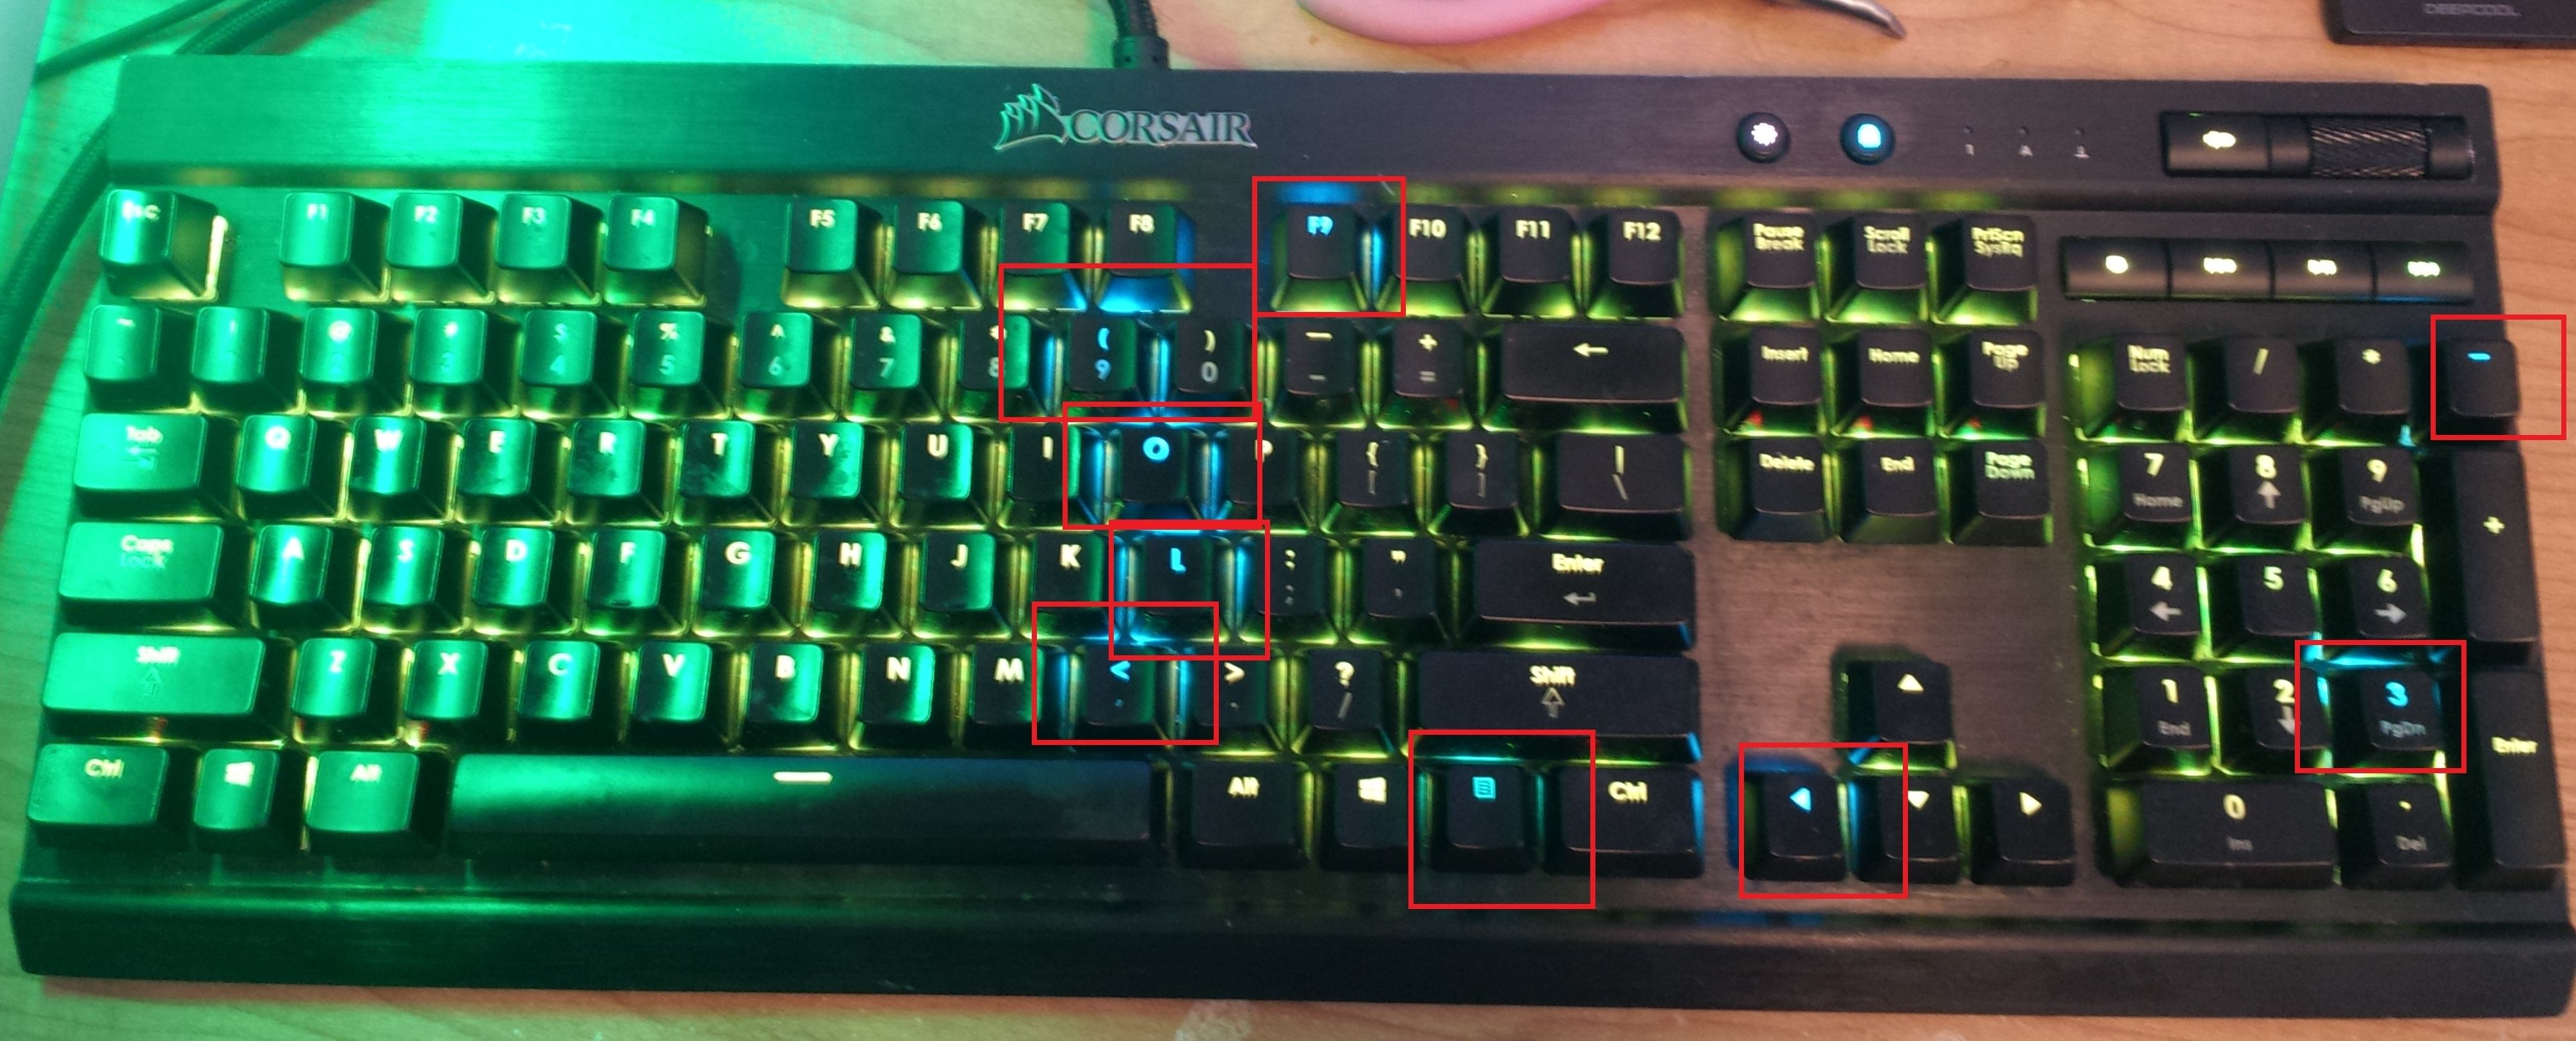 K70 LUX RGB LEDs not working right  - The Corsair User Forums